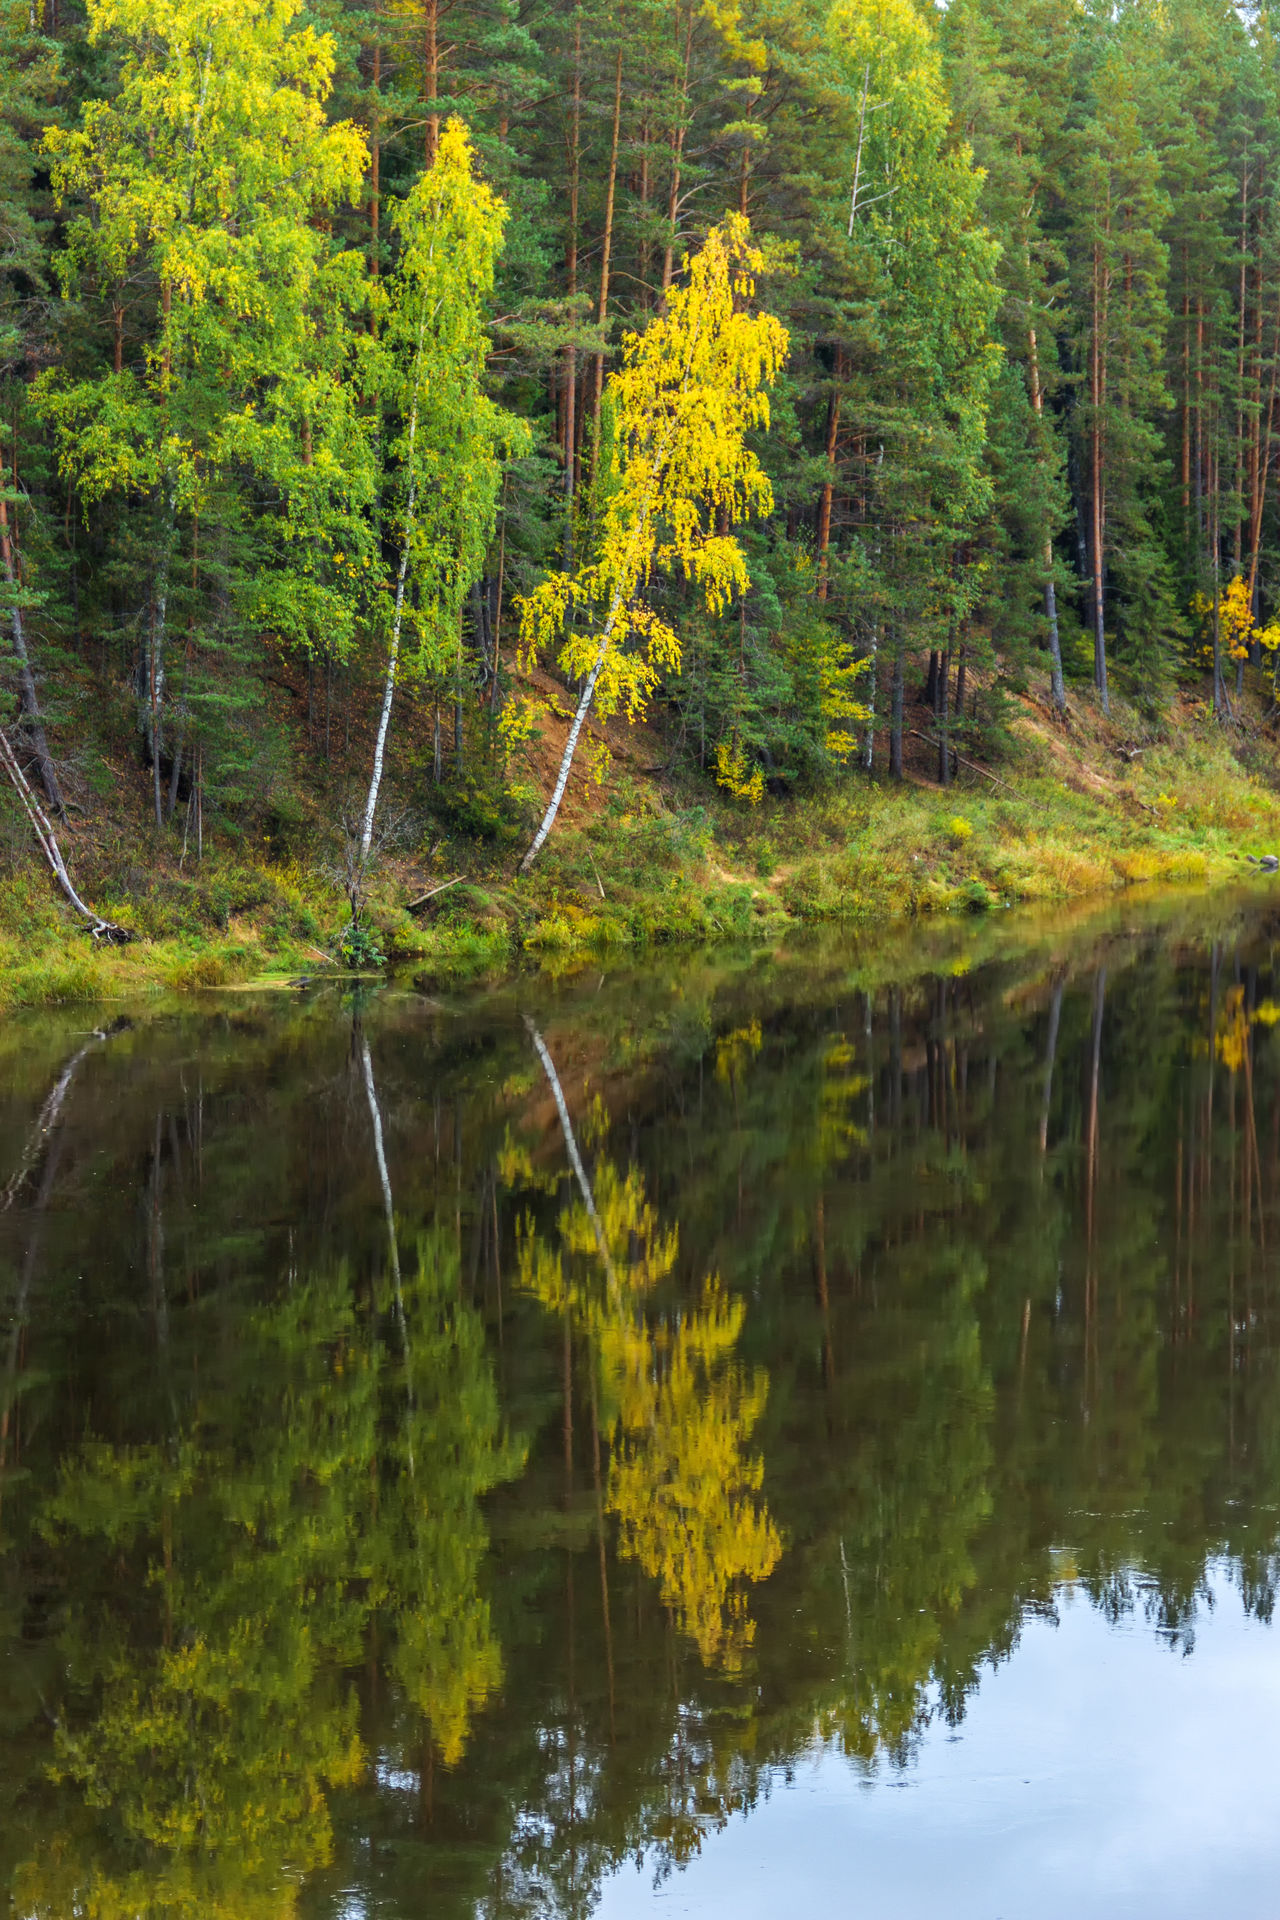 Reflection of trees in water of the river Mologa. Steep Bank with trees reflected in the water. Beauty In Nature Day Forest Growth Lake Landscape Mologa Nature No People Outdoors Plant Reflection River Scenics Tranquility Tree Water Yellow